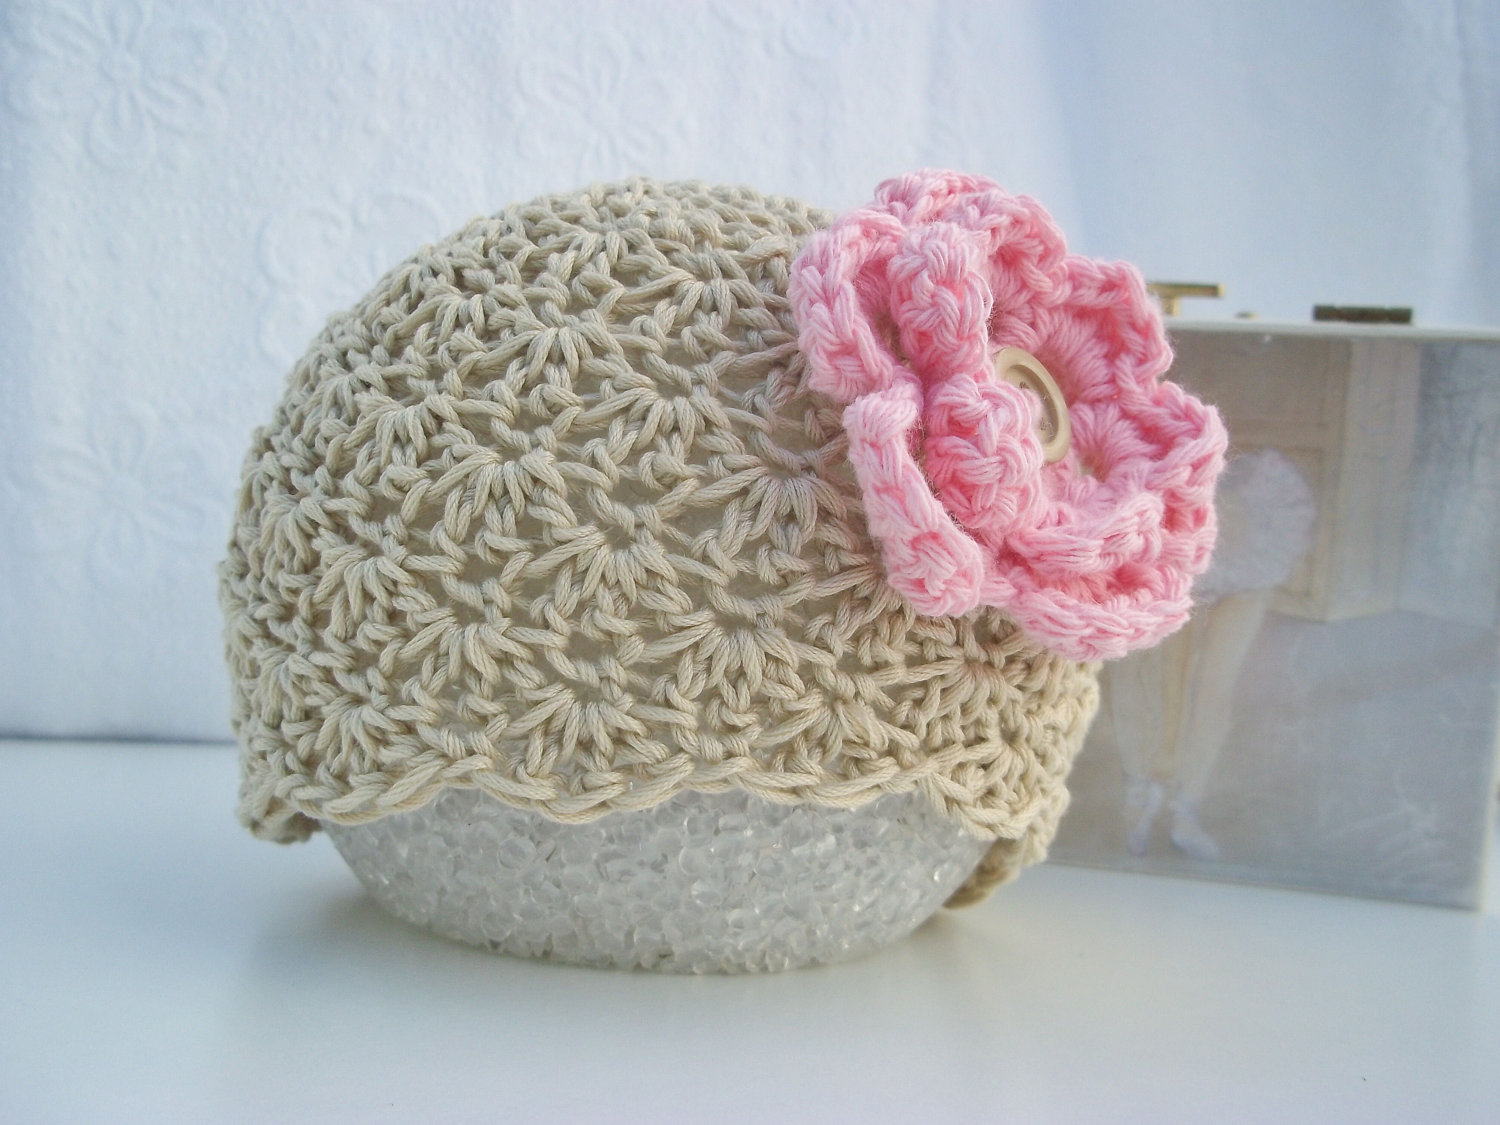 Crochet Patterns Baby Hats : Crochet baby hat Baby girl hat Newborn baby hat Beige Tan ...